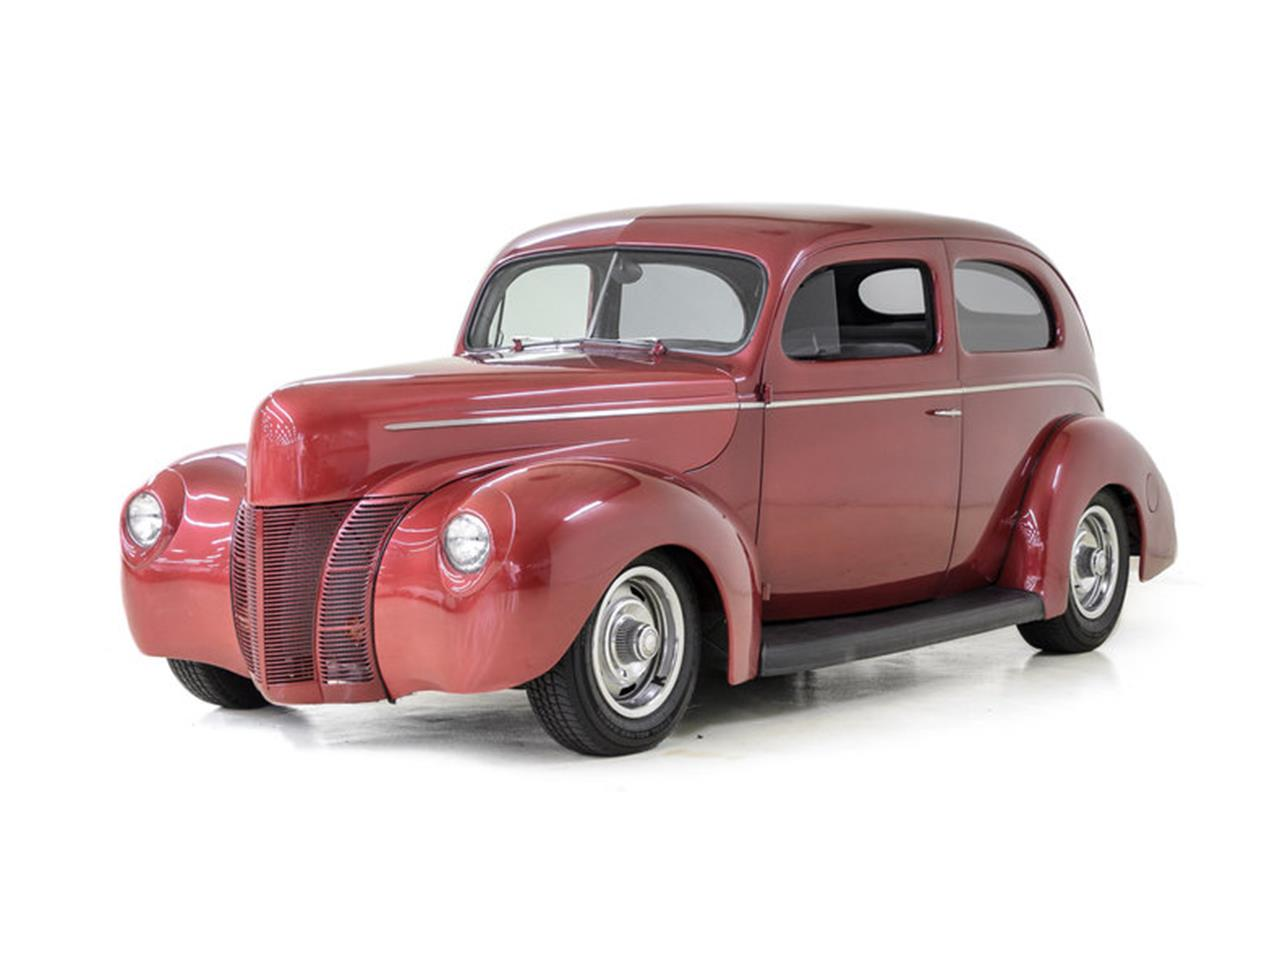 1940 Ford Deluxe for Sale on ClassicCars.com